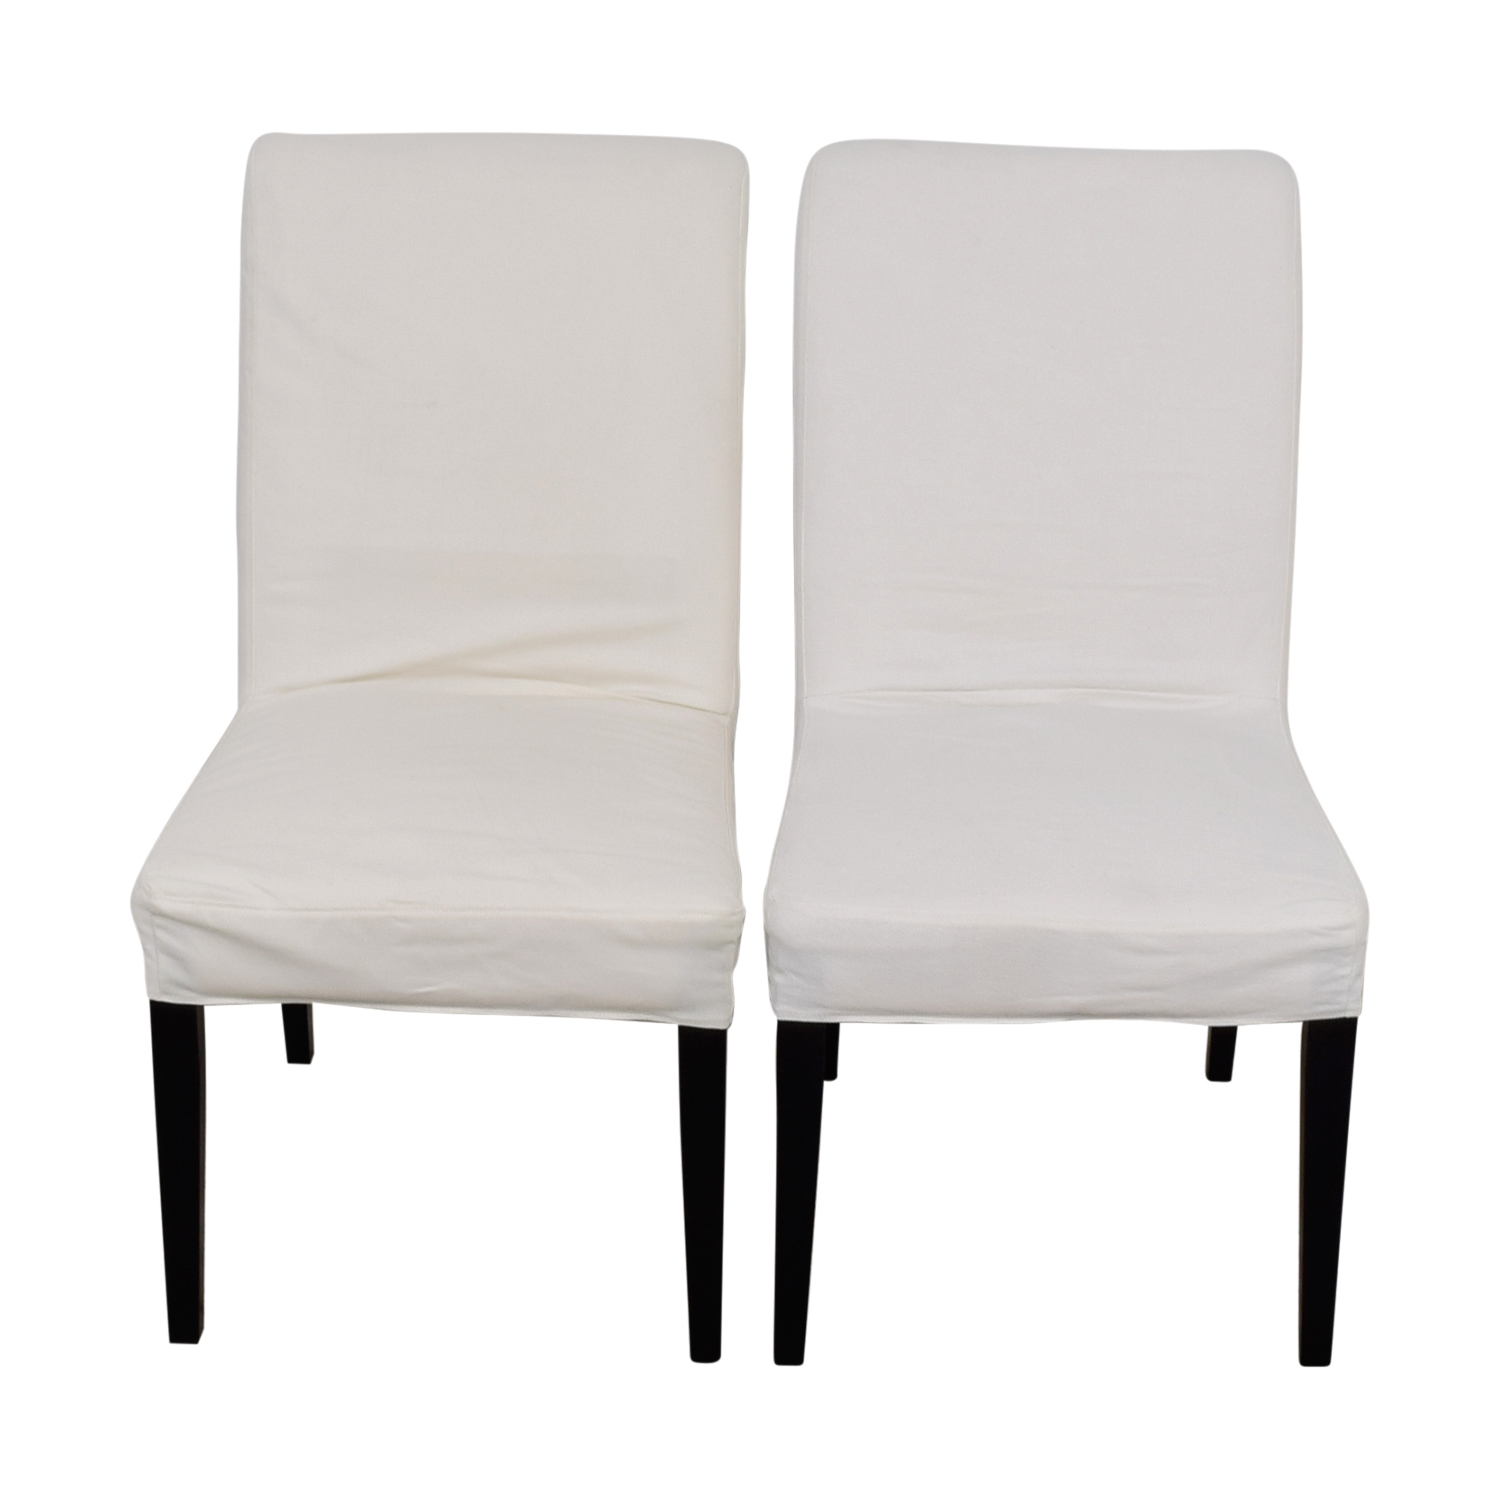 88 off ikea ikea hendriksdal dining chairs chairs. Black Bedroom Furniture Sets. Home Design Ideas